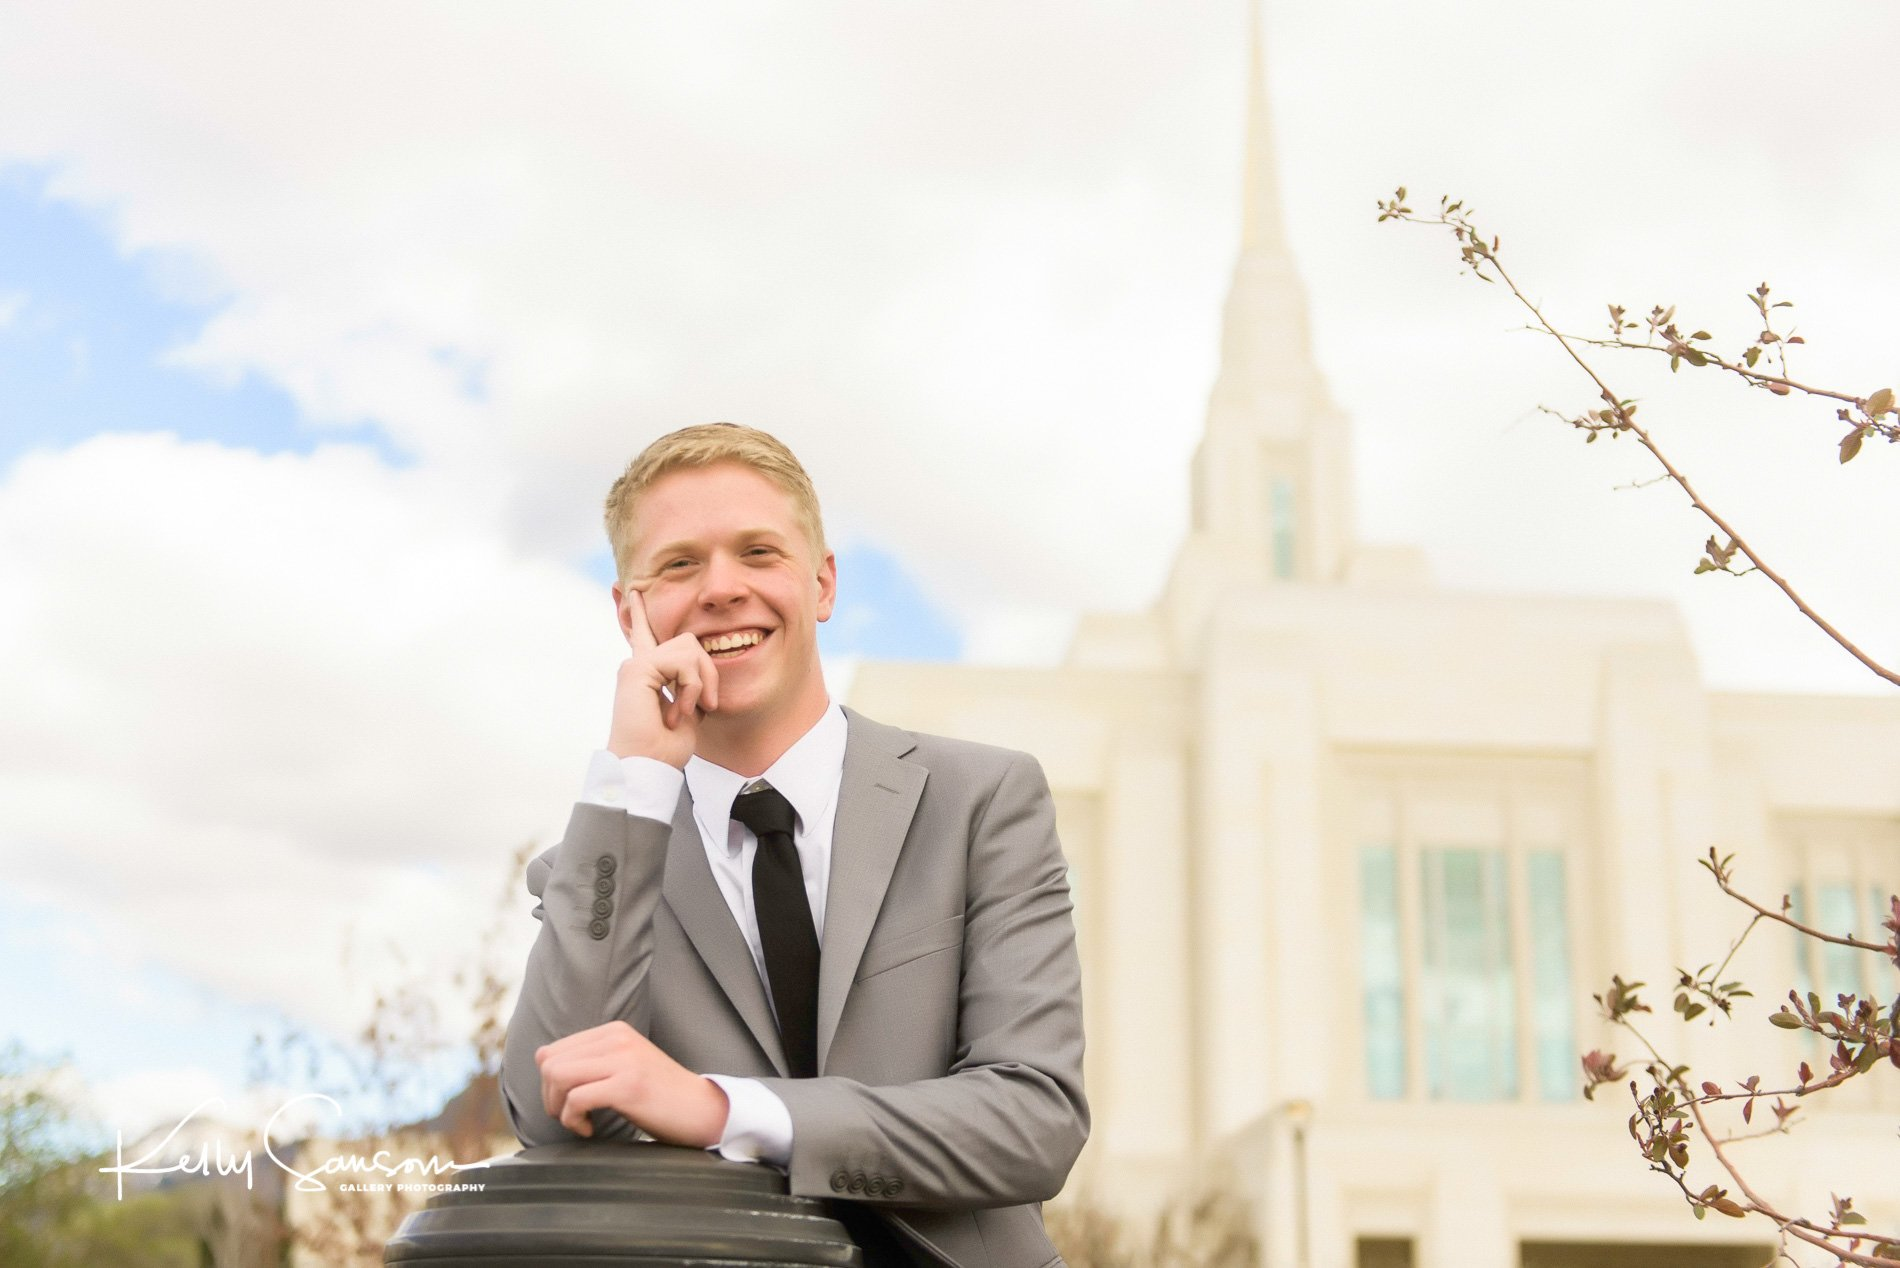 A young man standing in front of the Ogden LDS temple for Ogden portrait photography.